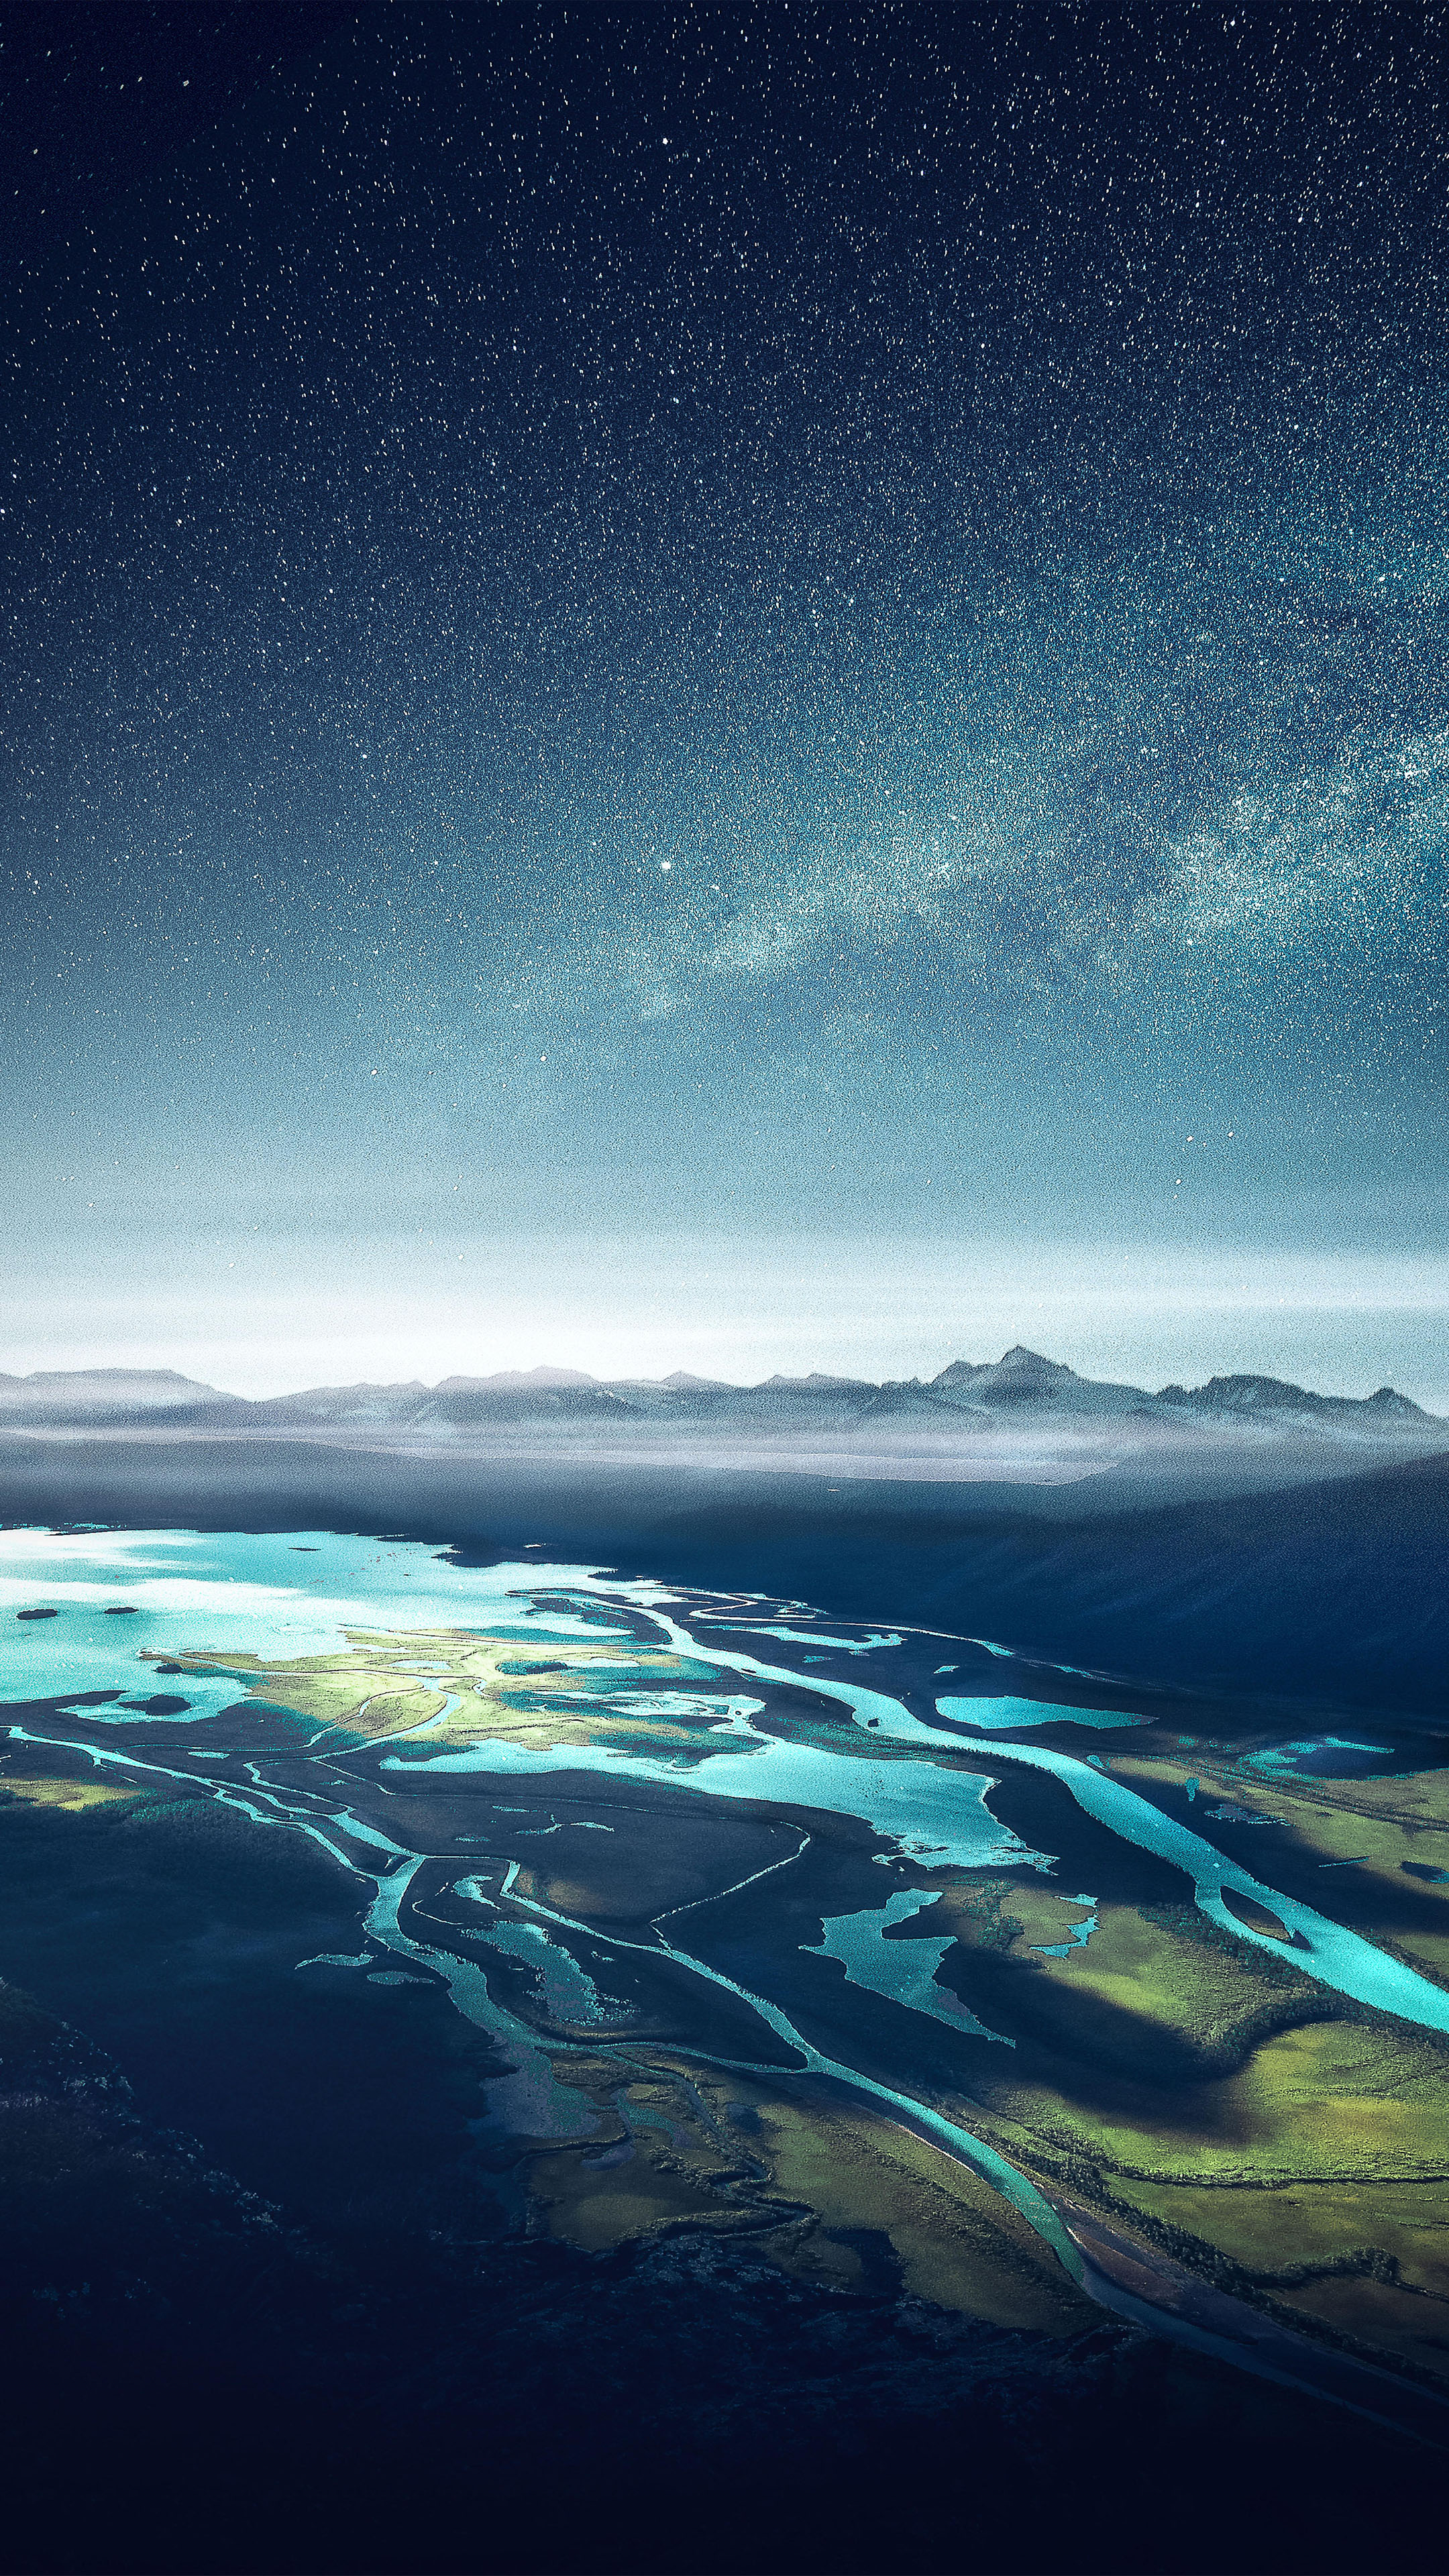 Download Mountain Range River Landscape Starry Sky Free Pure